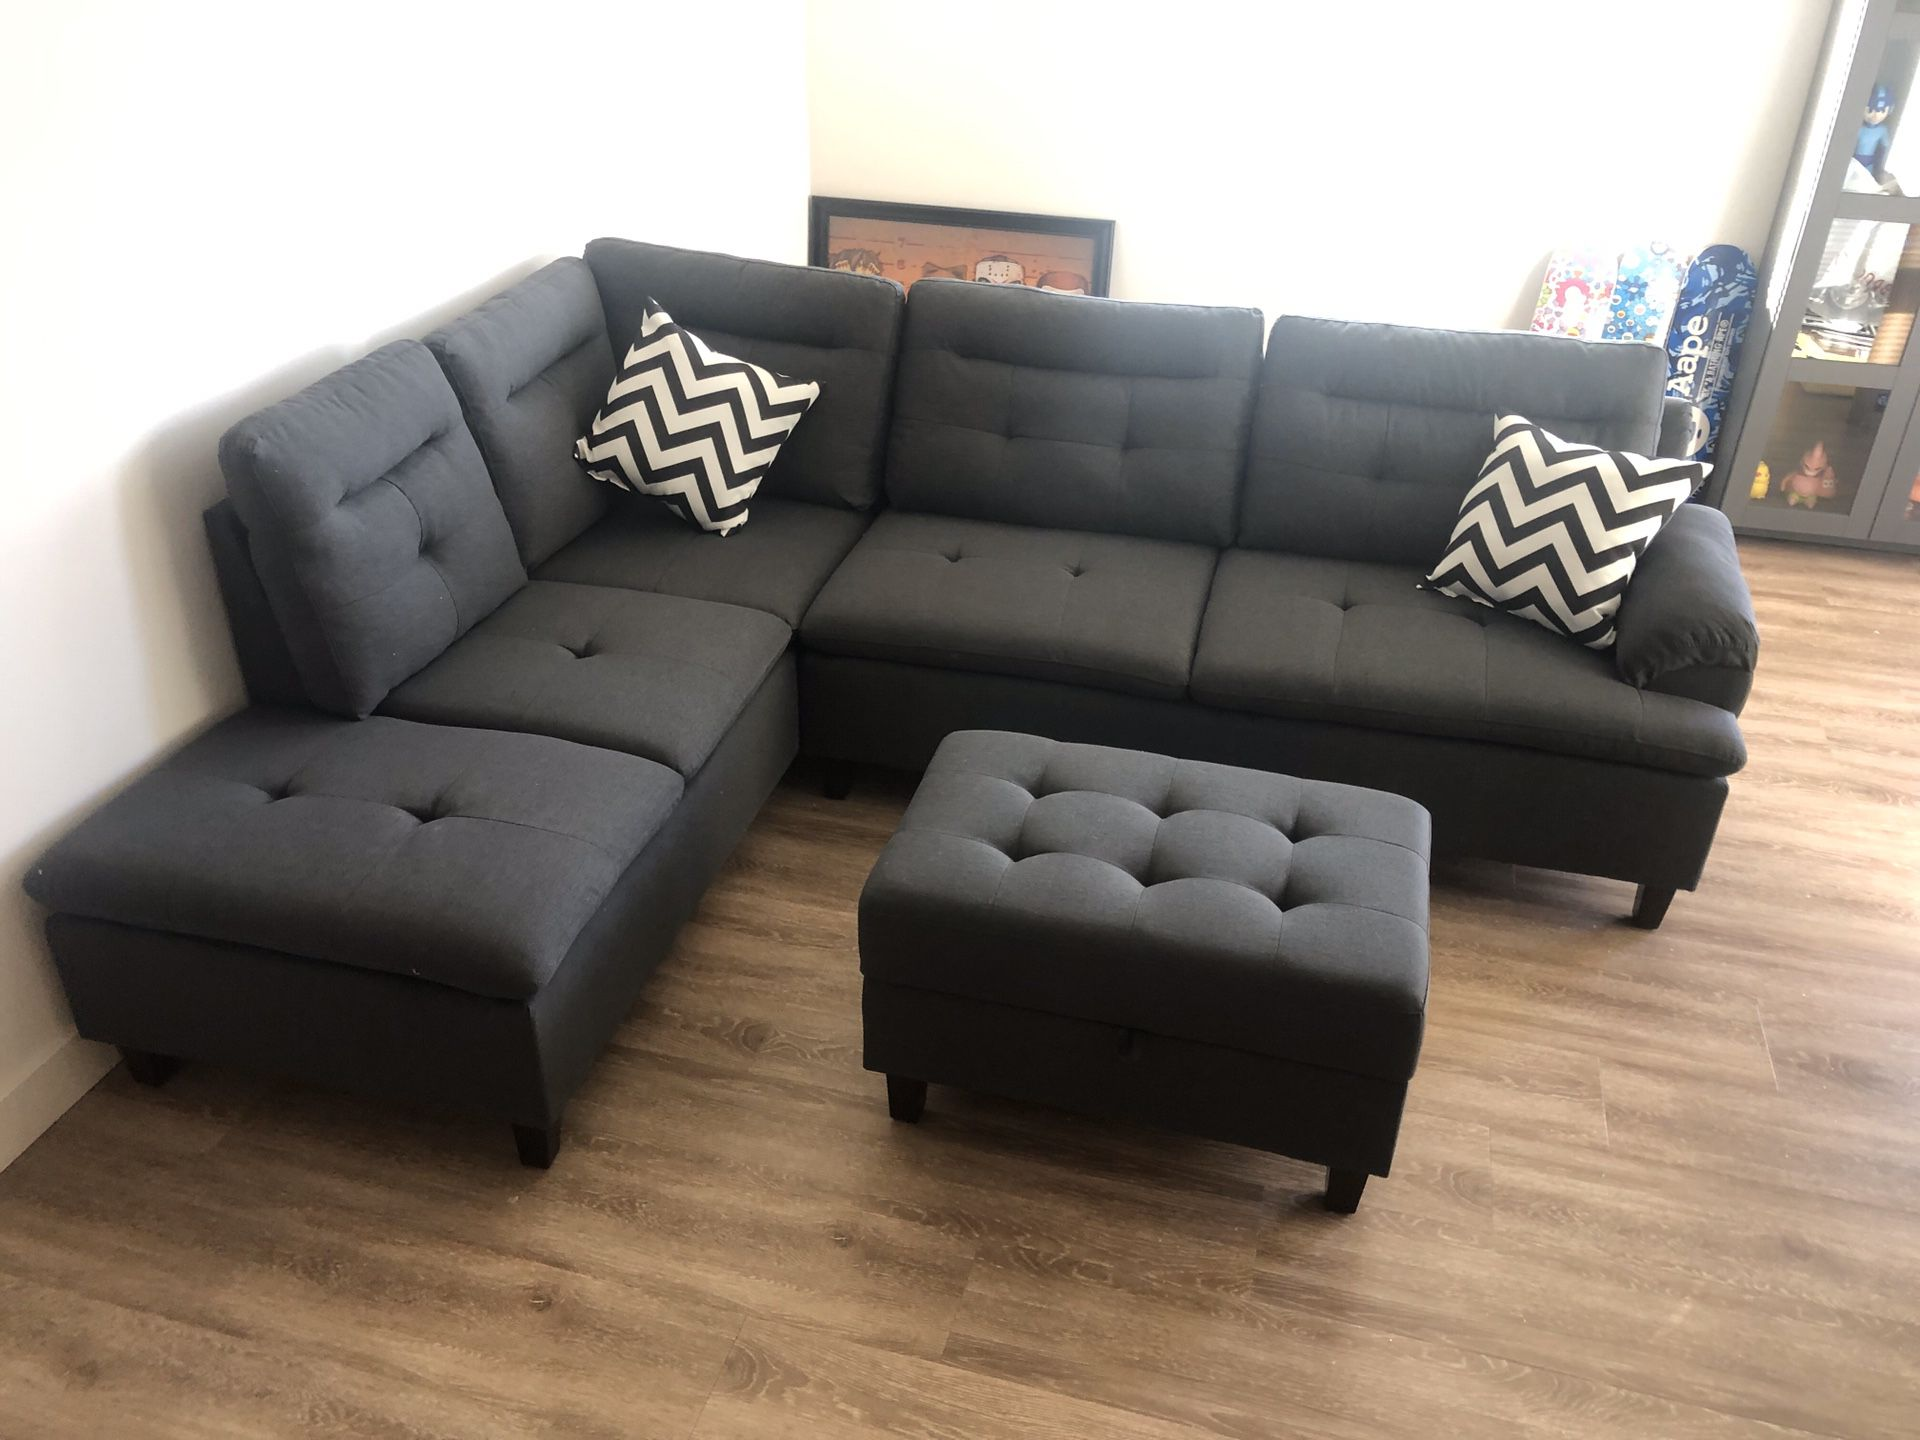 New Sectional with Storage Ottoman. $650